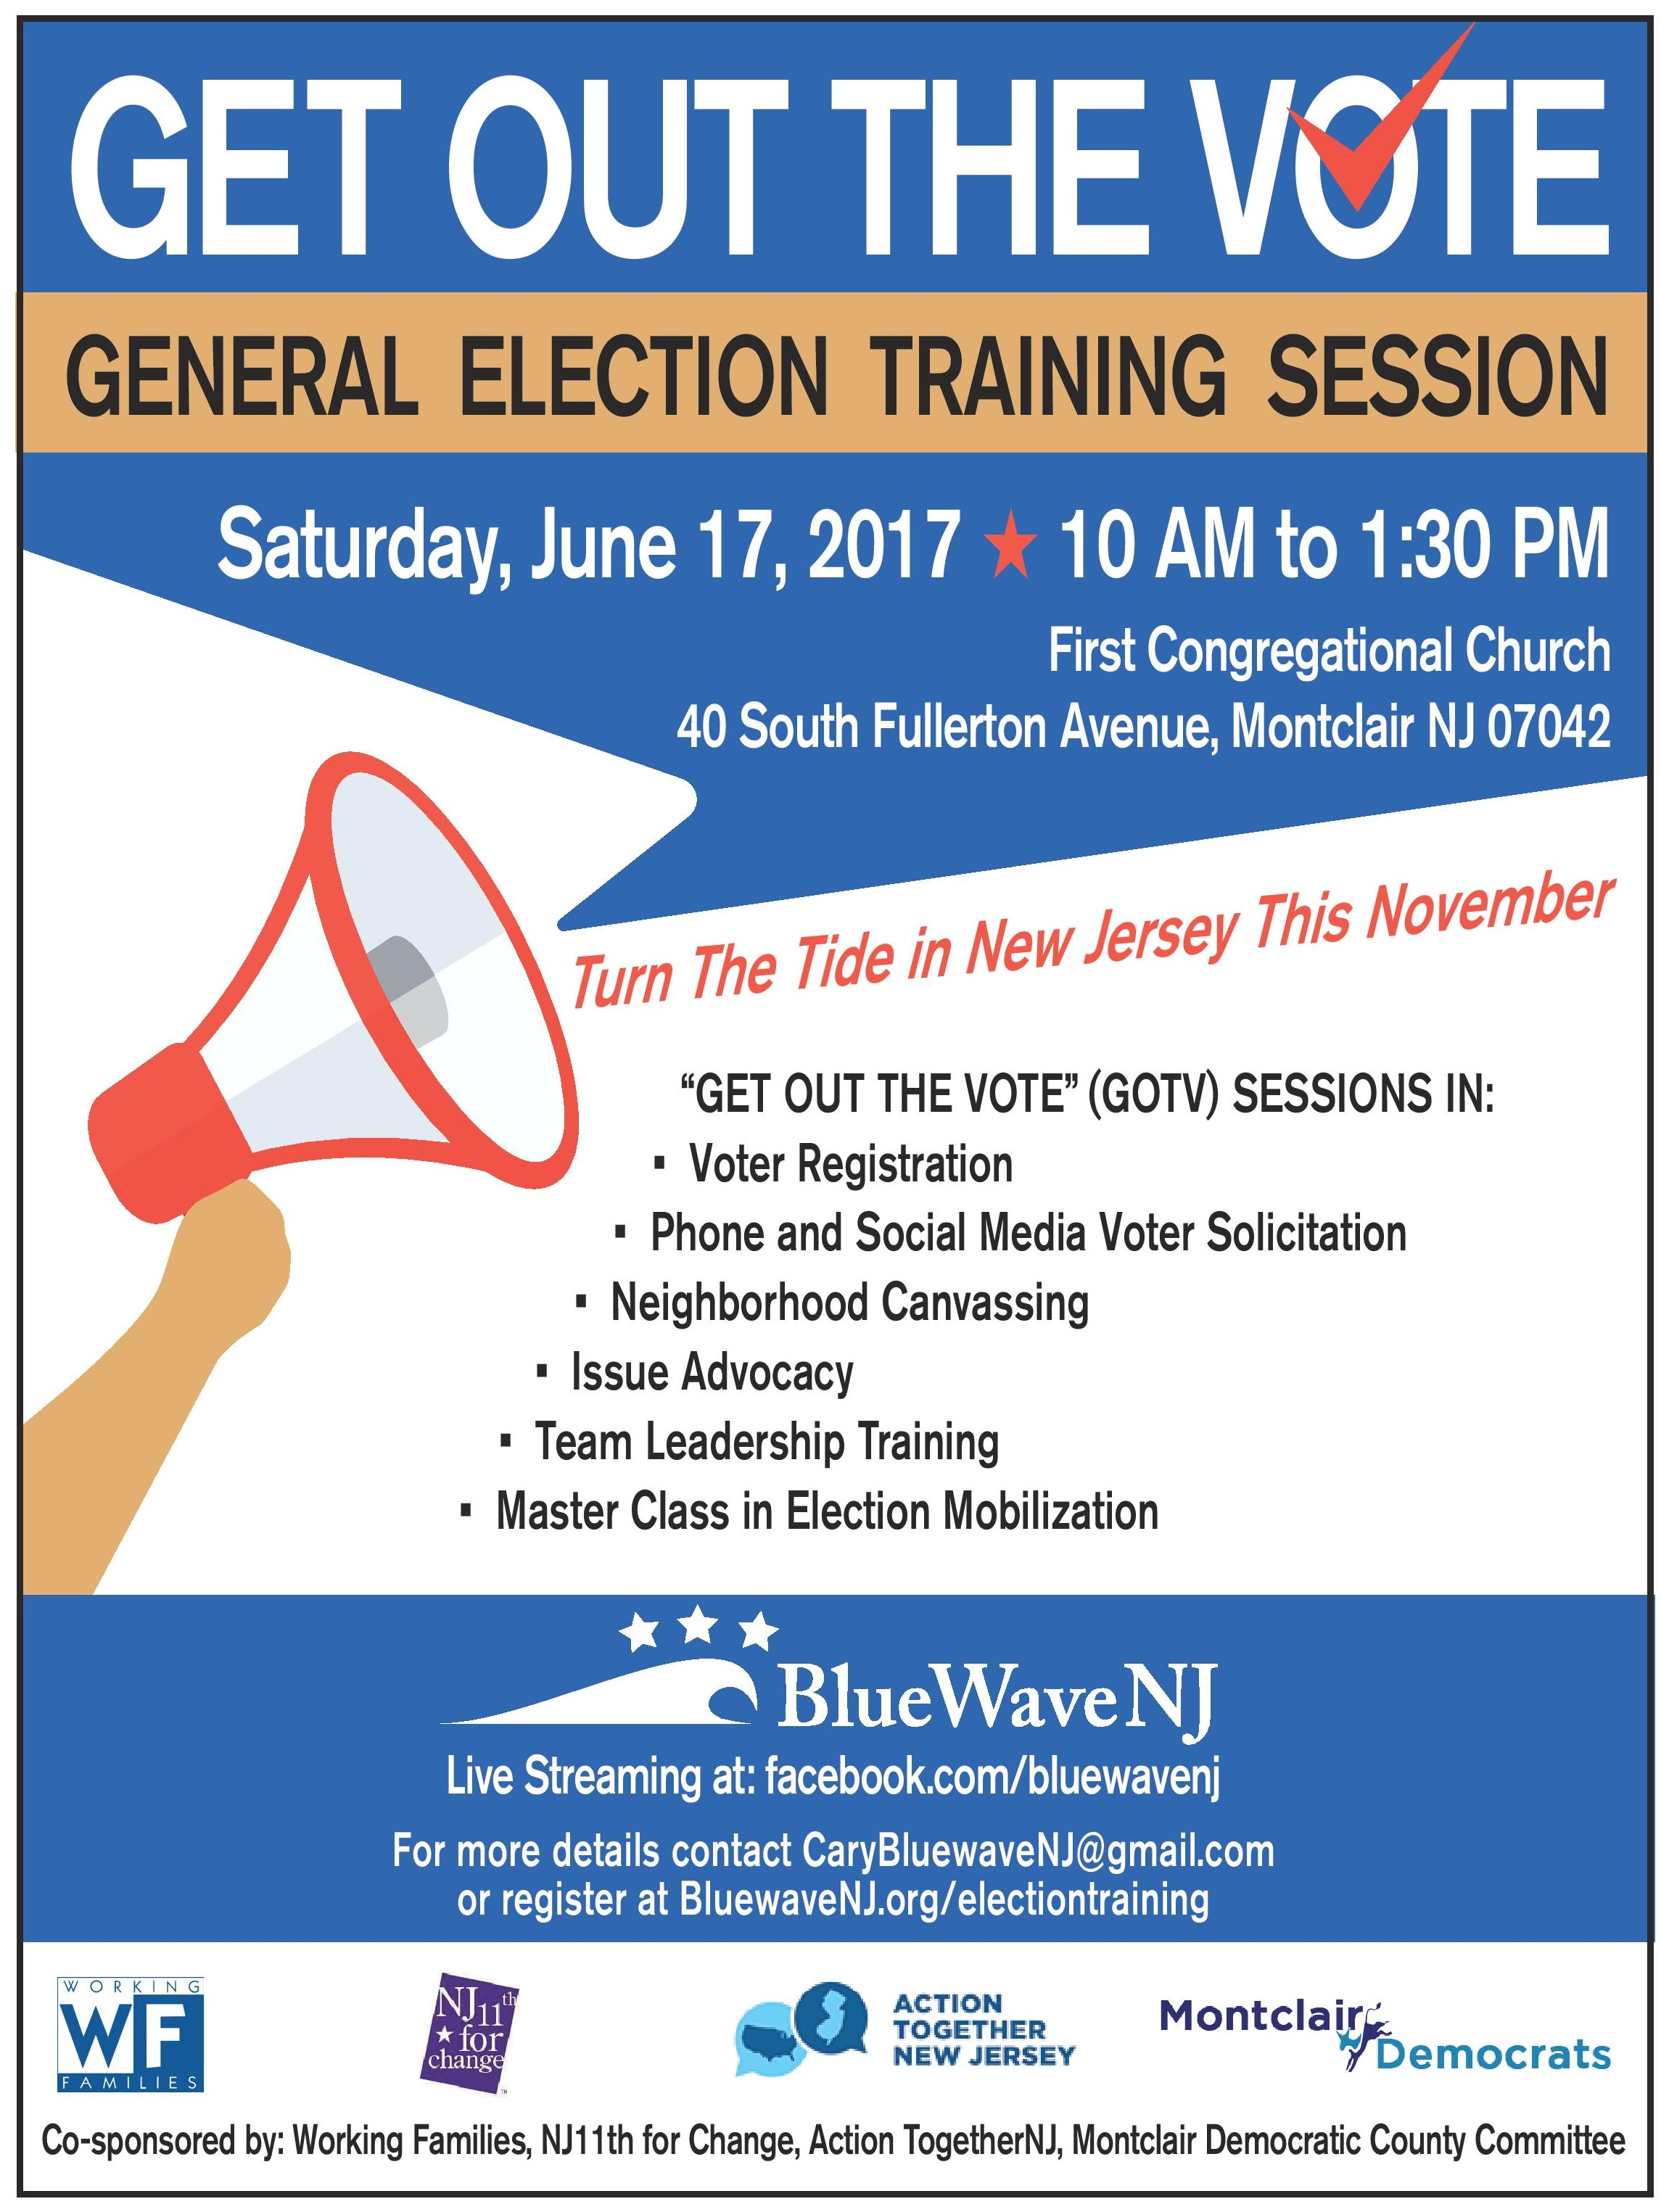 GetOutVote_Flyer-2017-with_logos-page-001.jpg